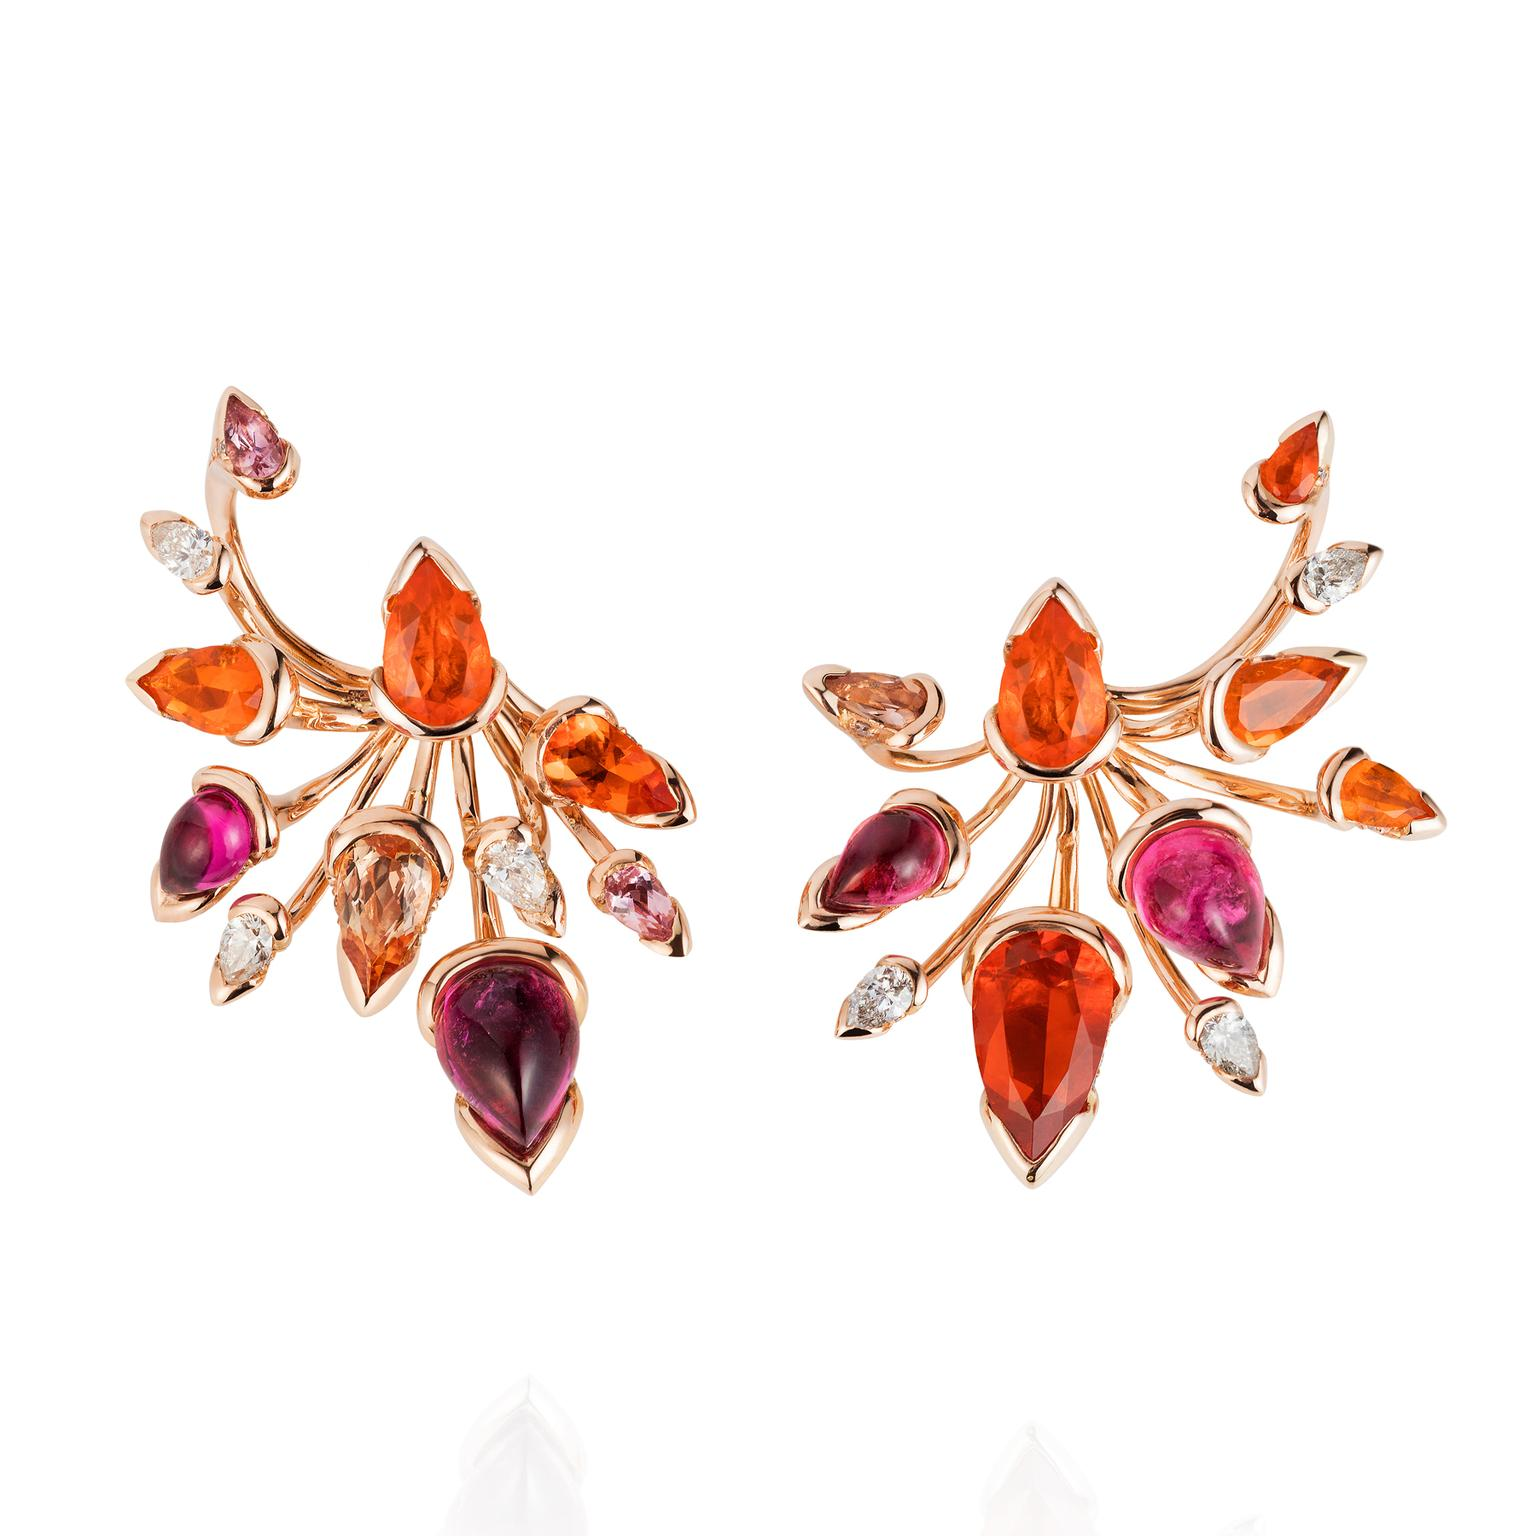 Bromelia Multi Coloured Gemstone Earrings In Rose Gold